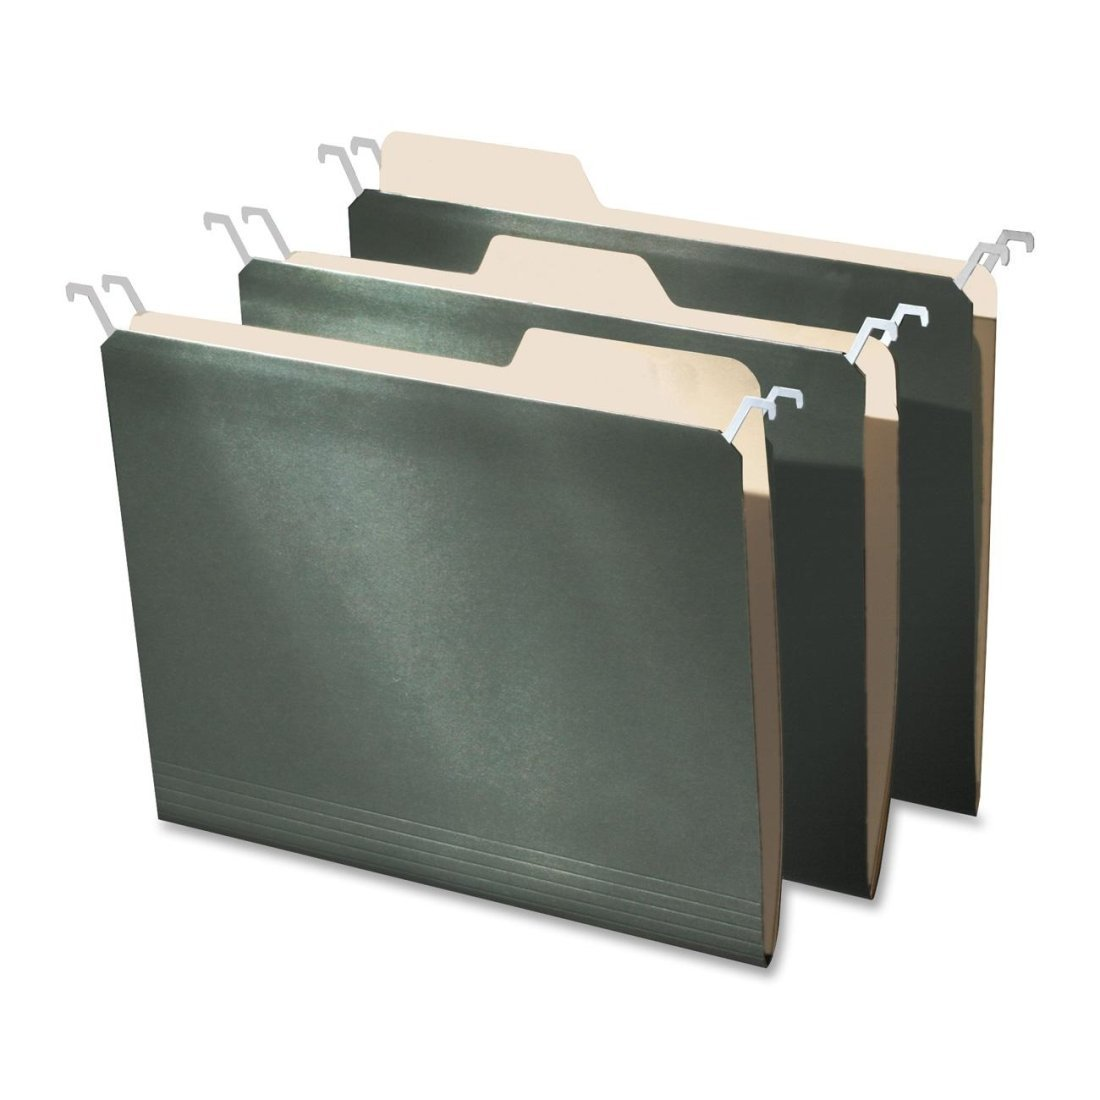 Find-It Hanging File Folders with Innovative Top Rail, 9 Point Stock, Letter Size (8.5 X 11-Inchs), 20 Per Pack, Green (intft05060)